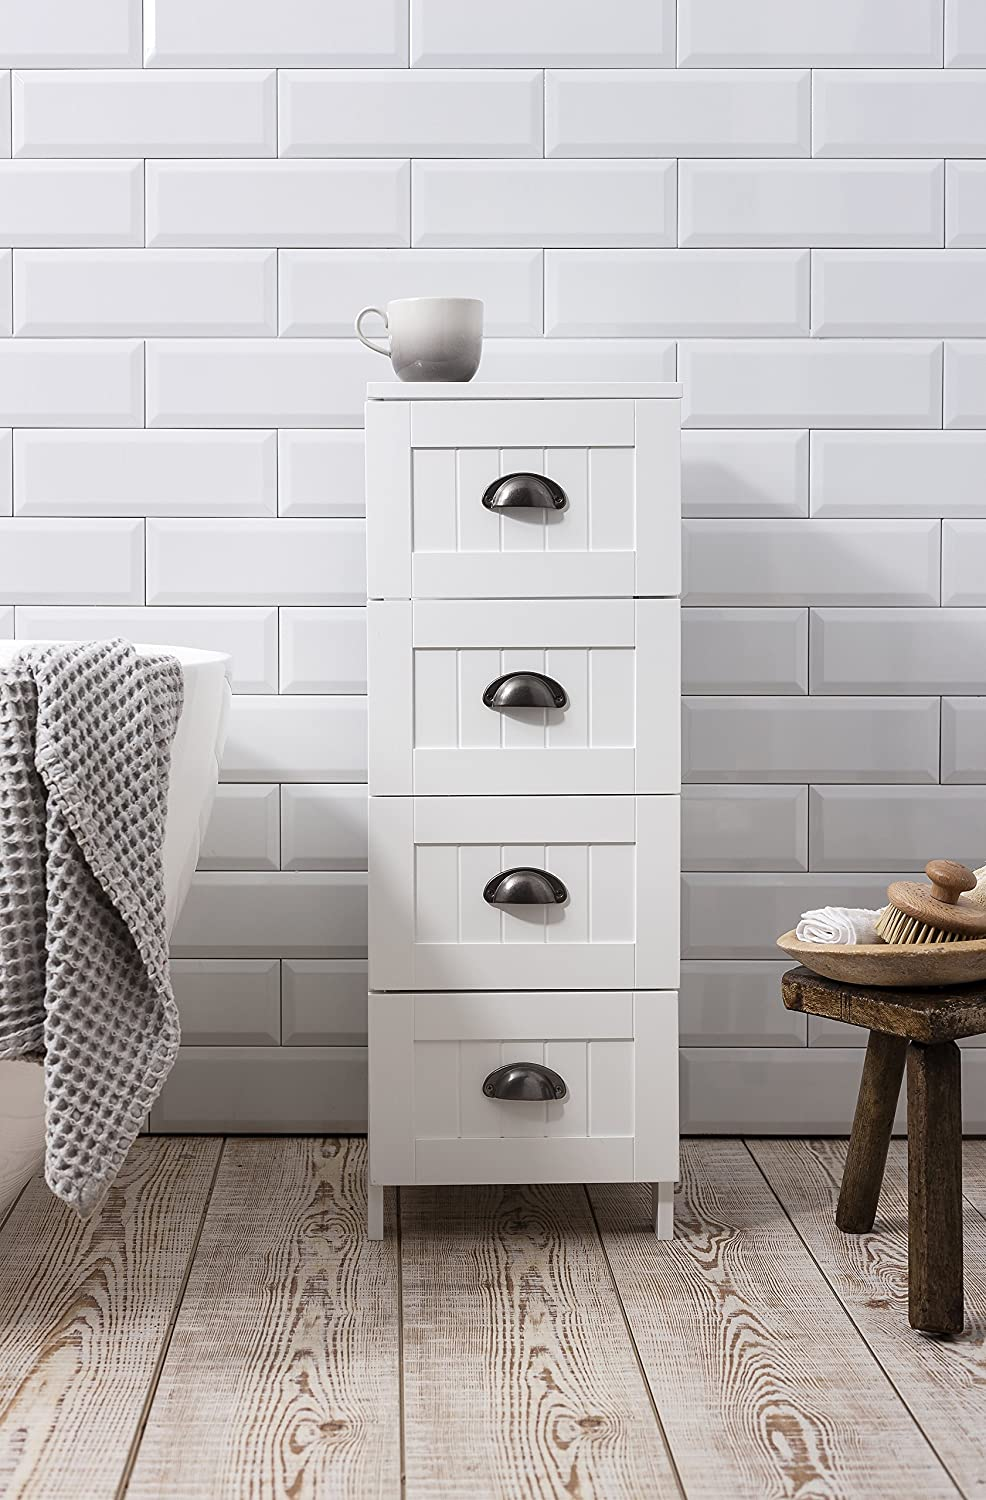 Stow Bathroom Cabinet 4 Drawer Storage Unit in White Noa & Nani ...